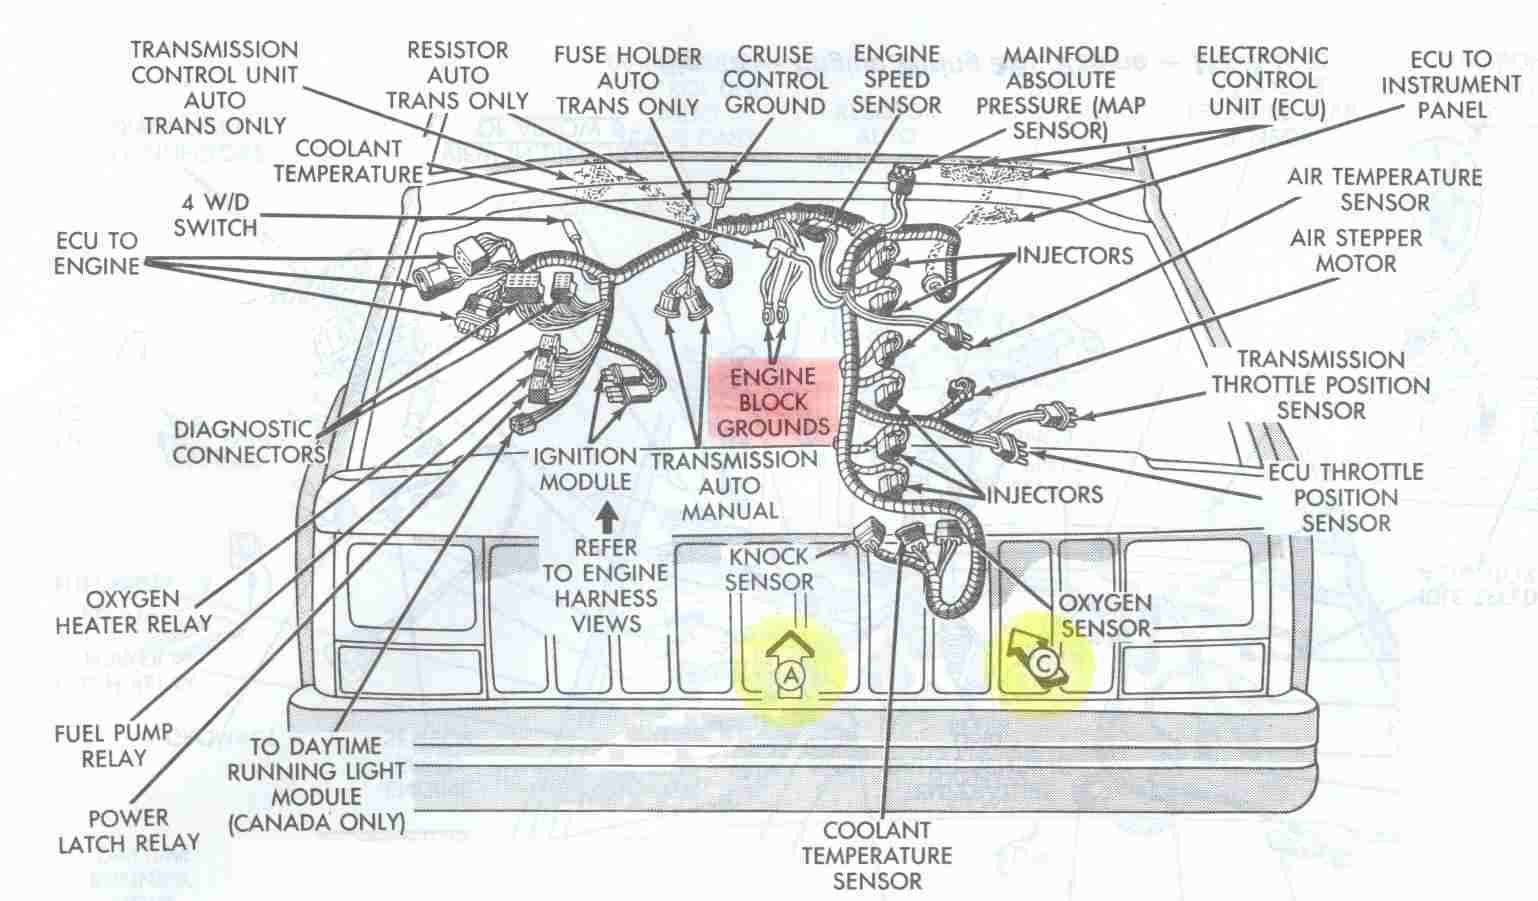 ab0134a7d9e021431187af597eb4aeca engine bay schematic showing major electrical ground points for 1994 Jeep Grand Cherokee Fuse Box Diagram at webbmarketing.co